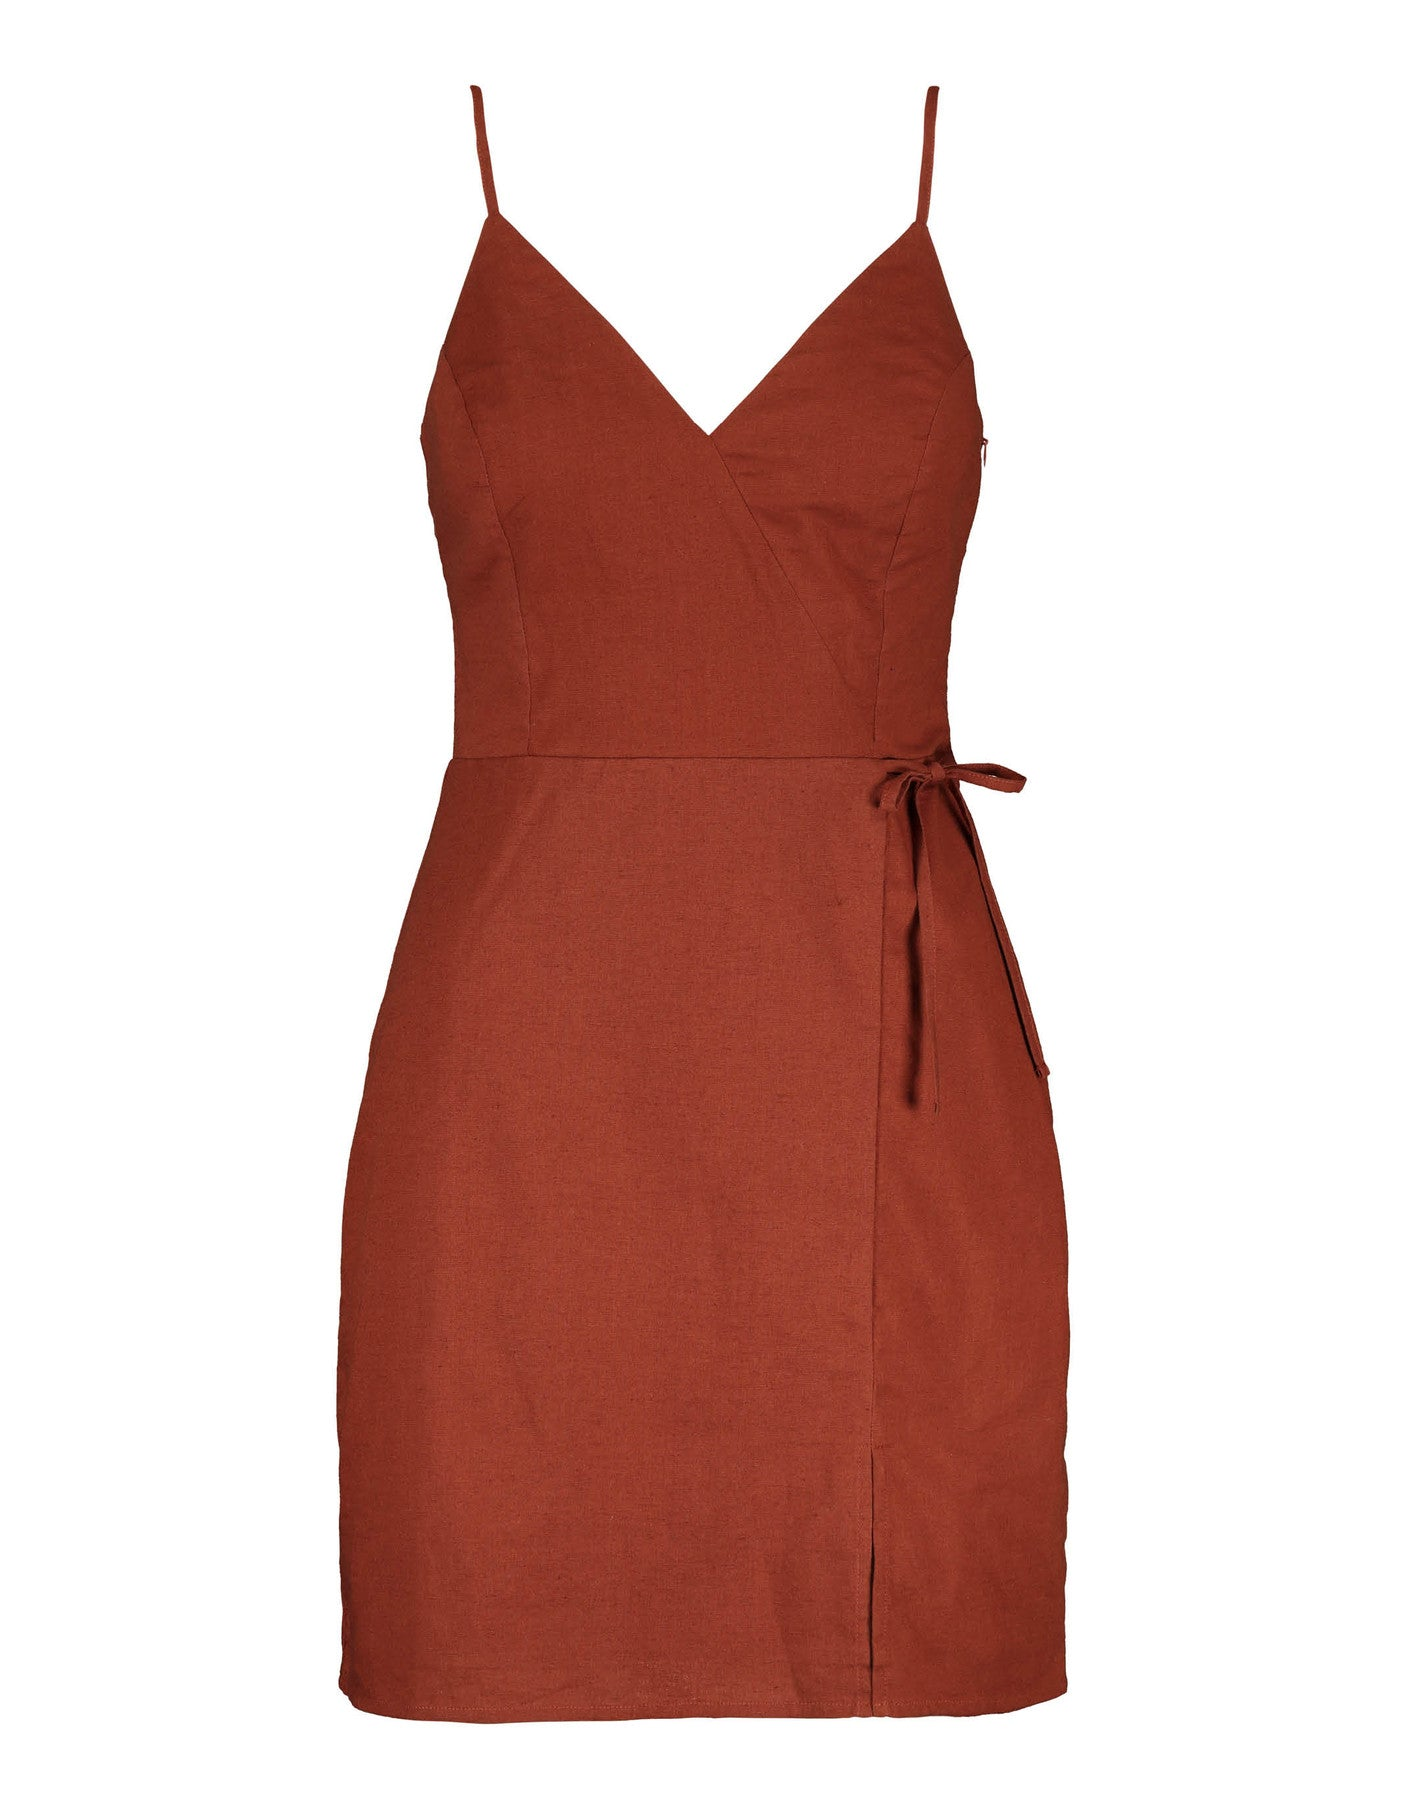 V Neck Strappy Dress | Copper Brown